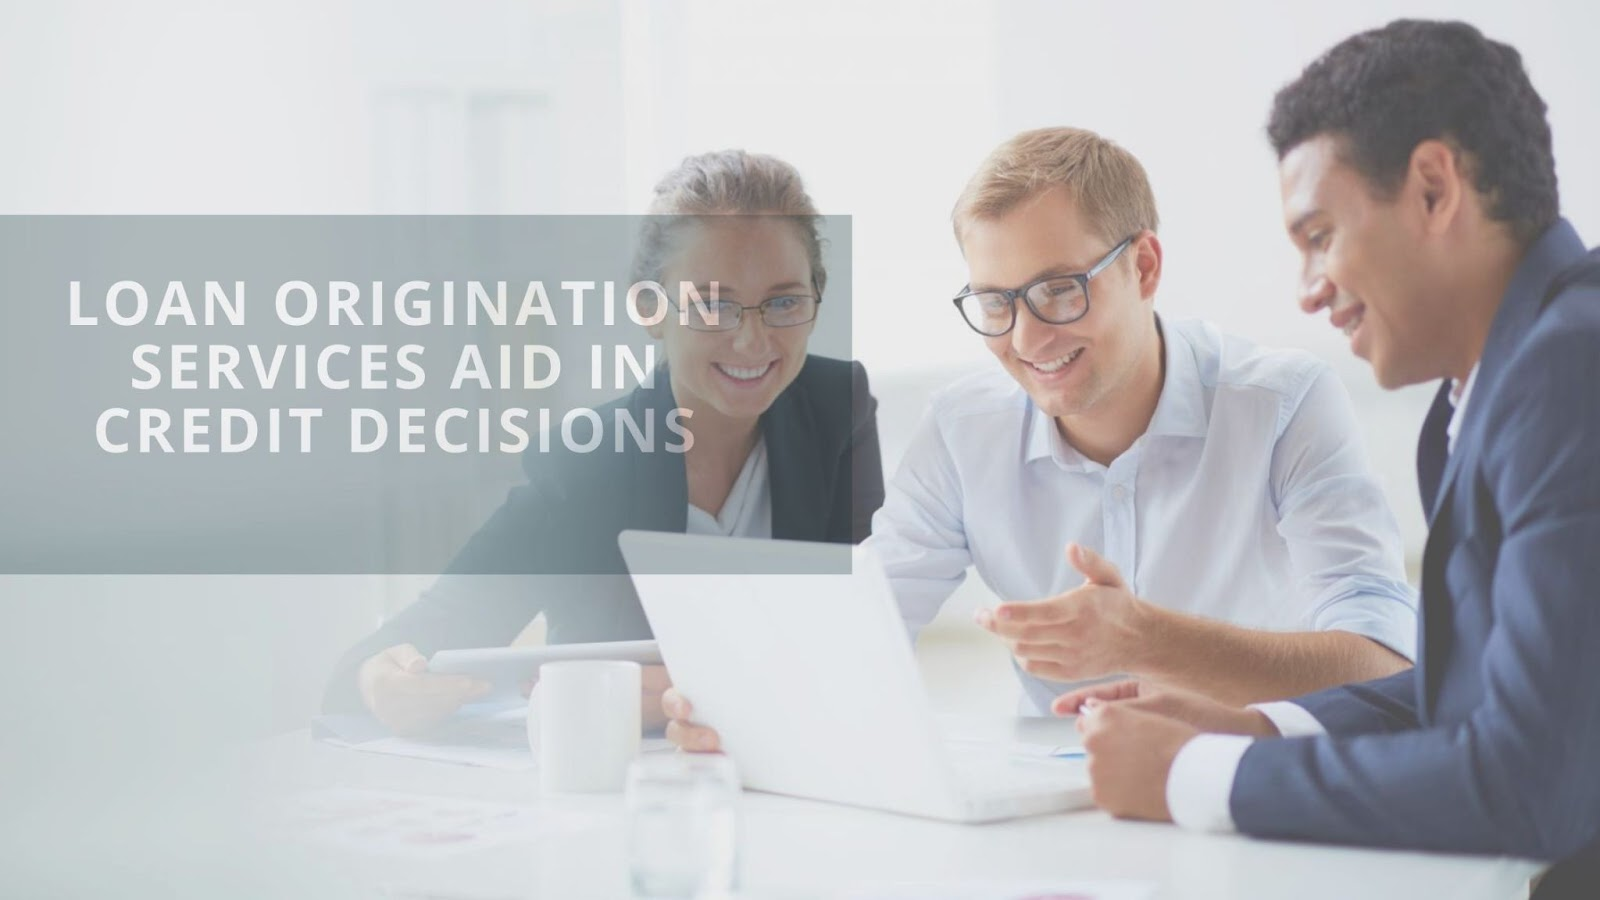 Loan Origination Services Aid in Credit Decisions